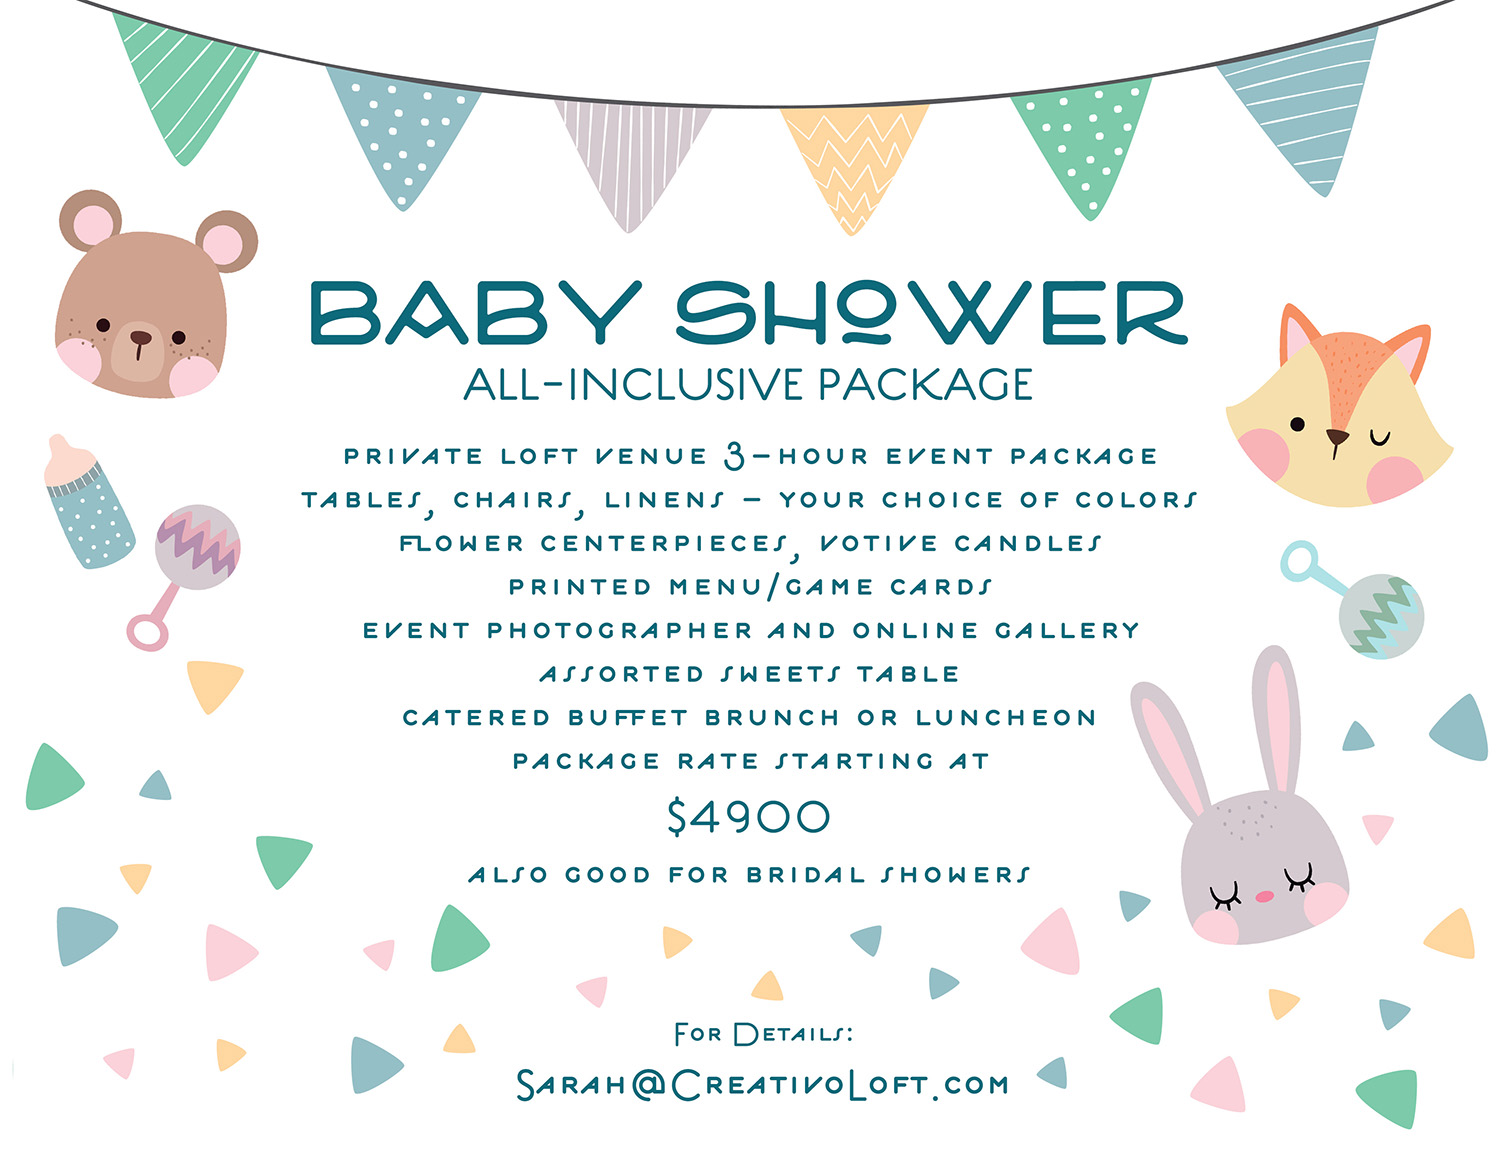 Chicago baby shower package at Creativo Loft